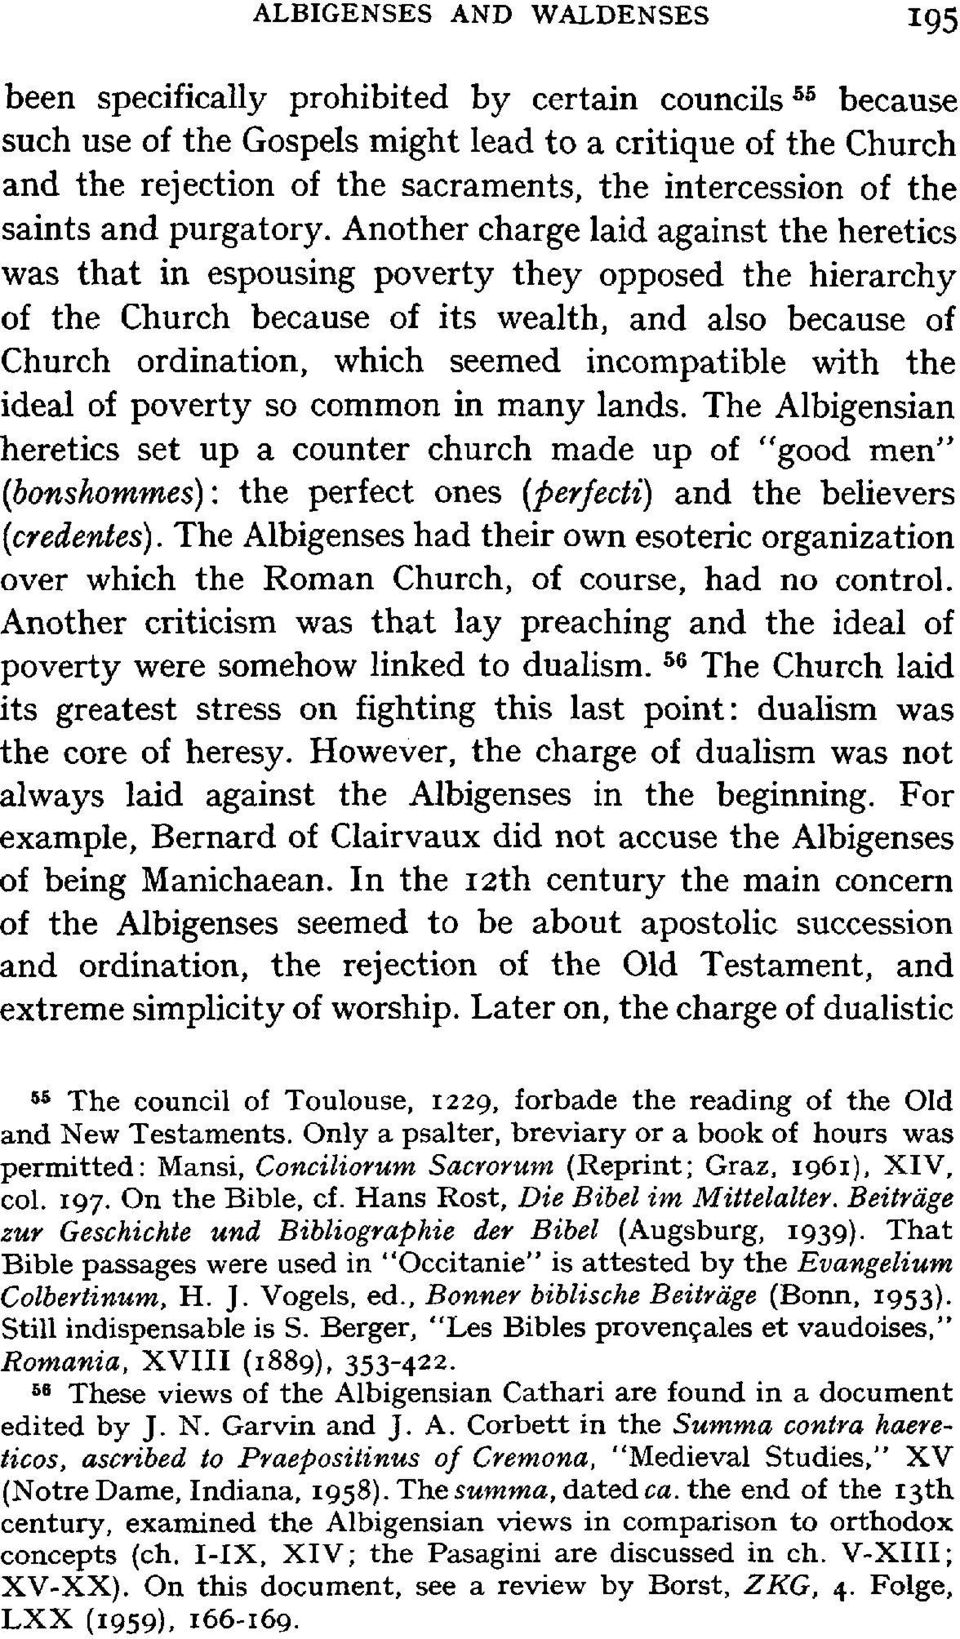 Another charge laid against the heretics was that in espousing poverty they opposed the hierarchy of the Church because of its wealth, and also because of Church ordination, which seemed incompatible